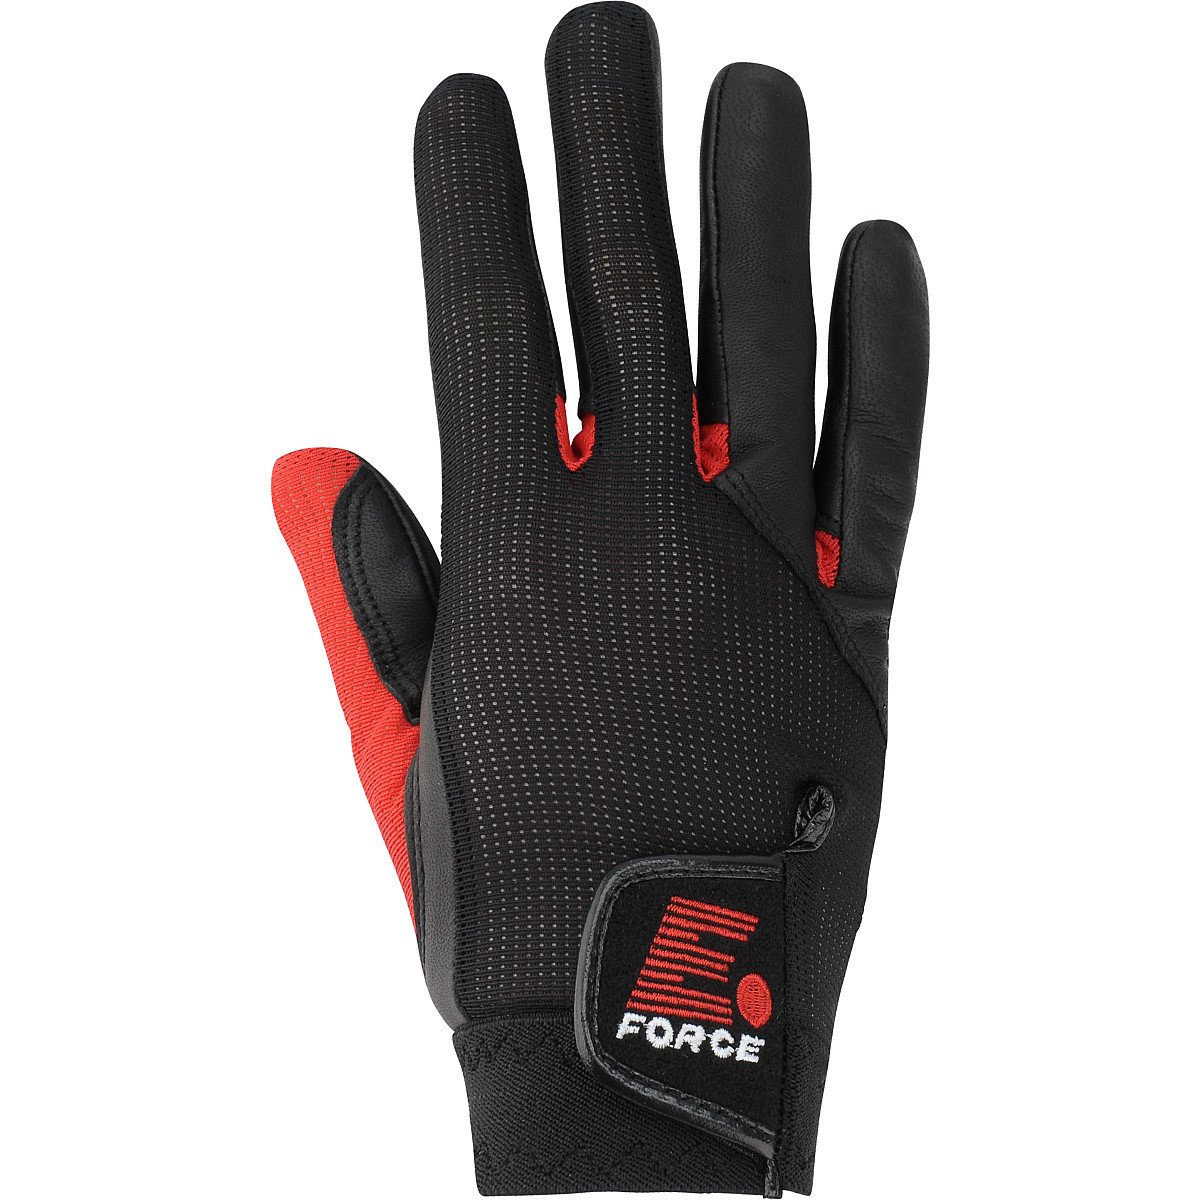 E-Force Weapon Racquetball Glove (Black/Red)